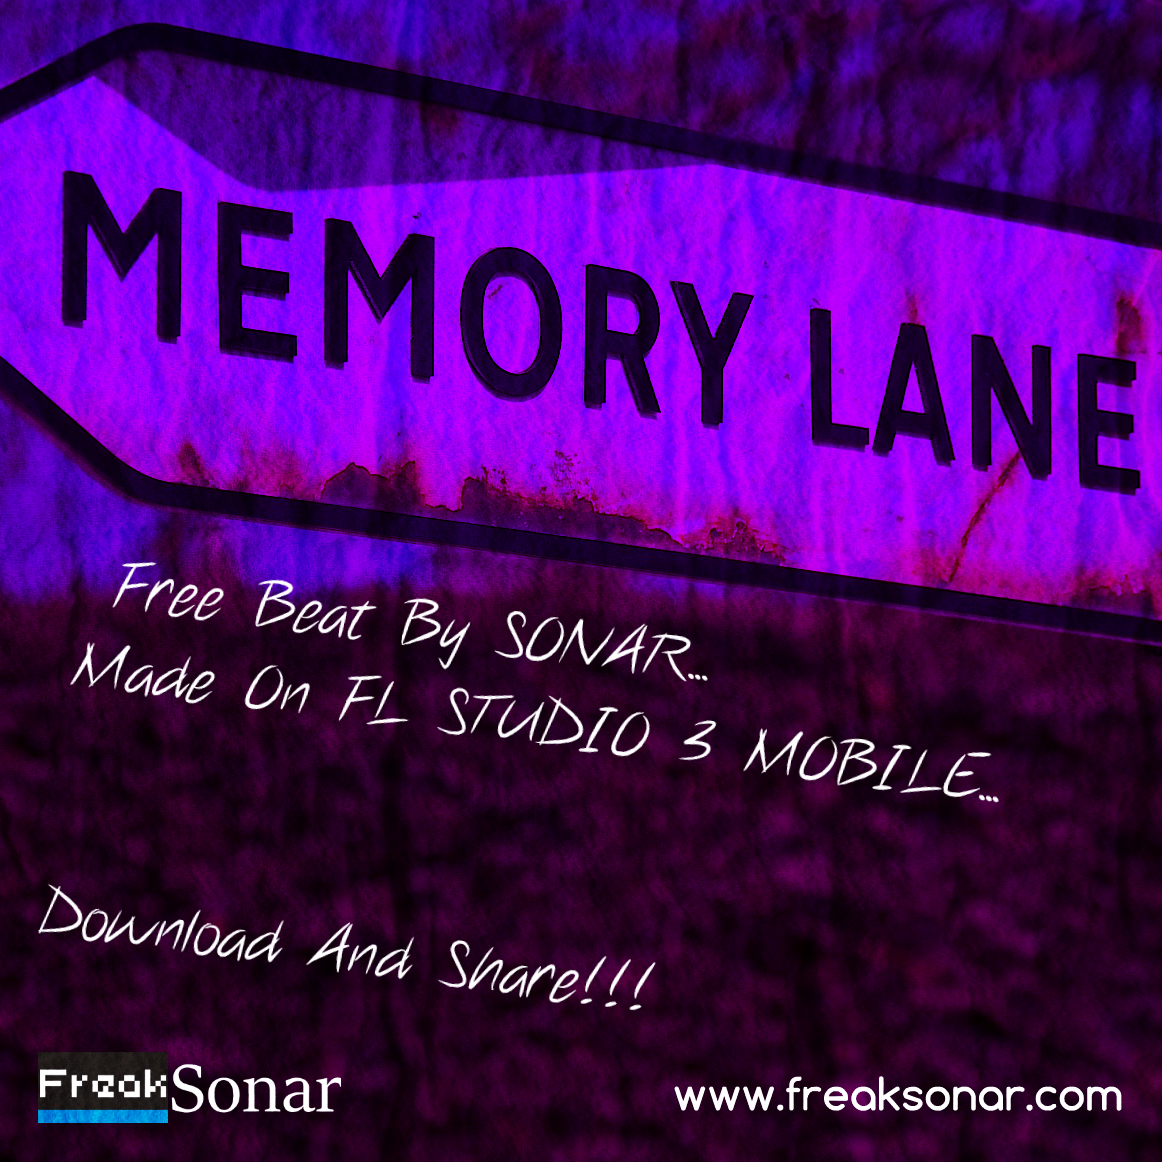 free afrobeat instrumentals made with fl studio mobile 3 memory lane beat by sonar